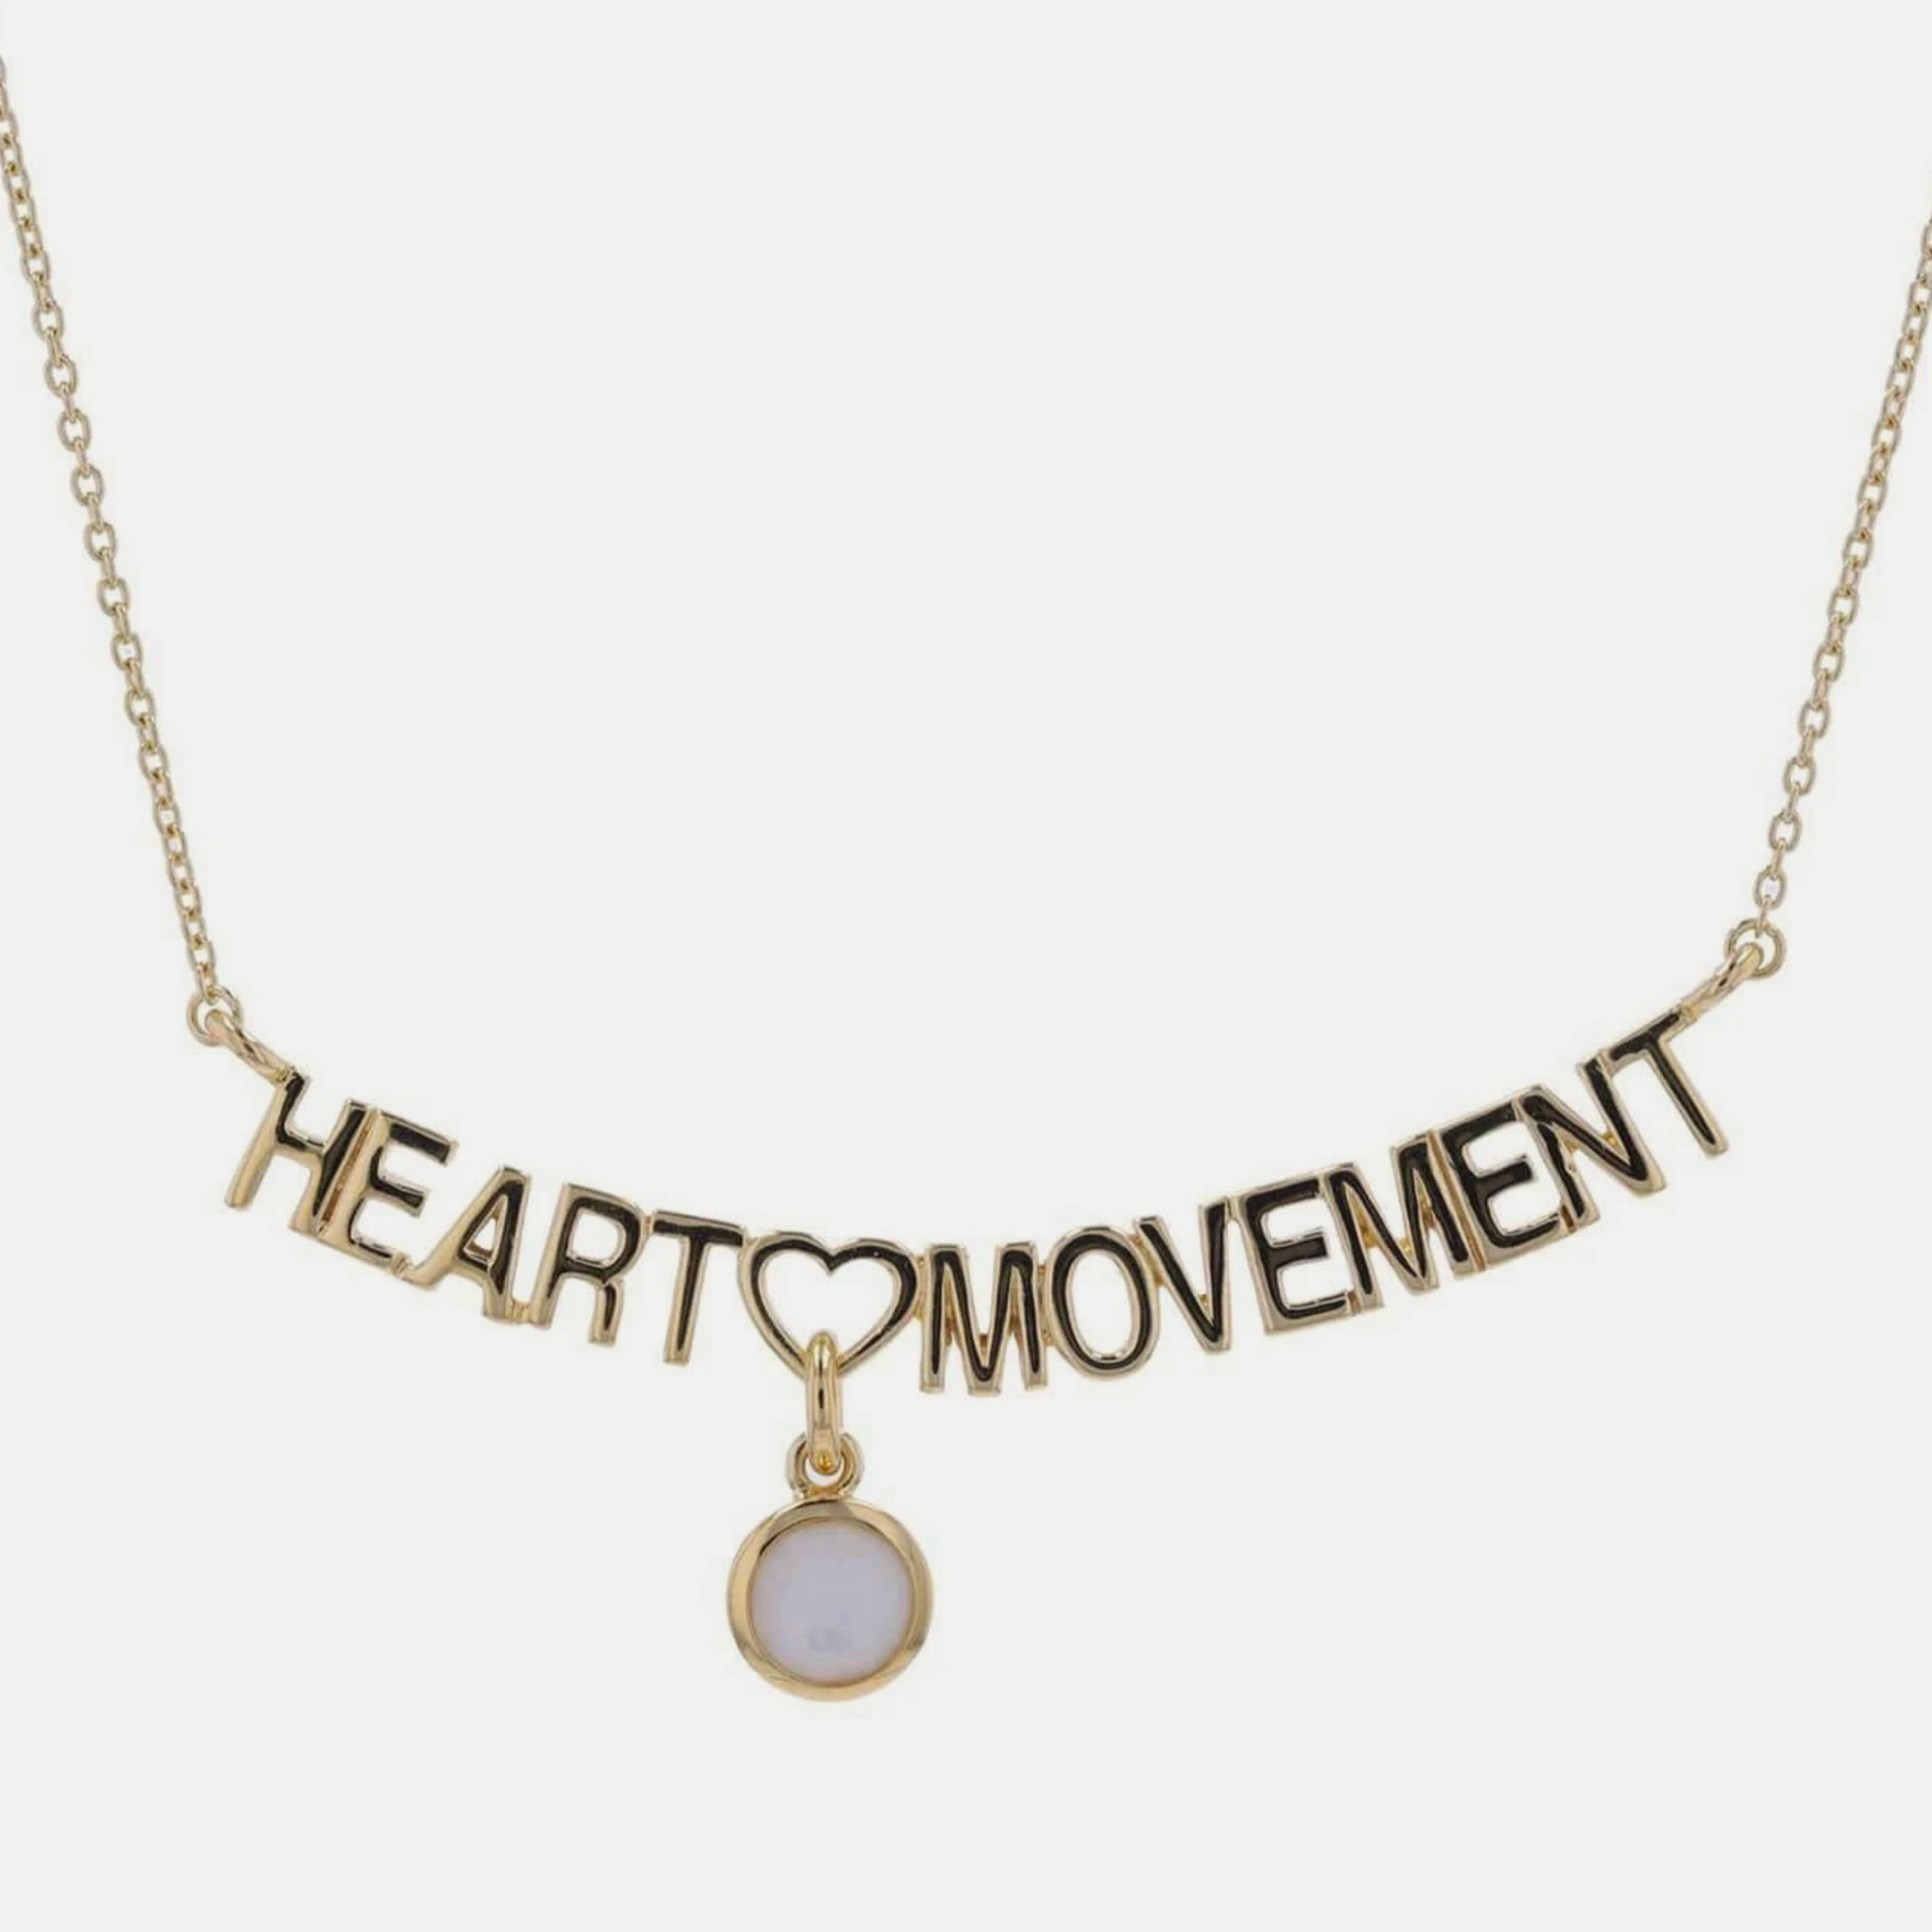 Heart Movement Necklace